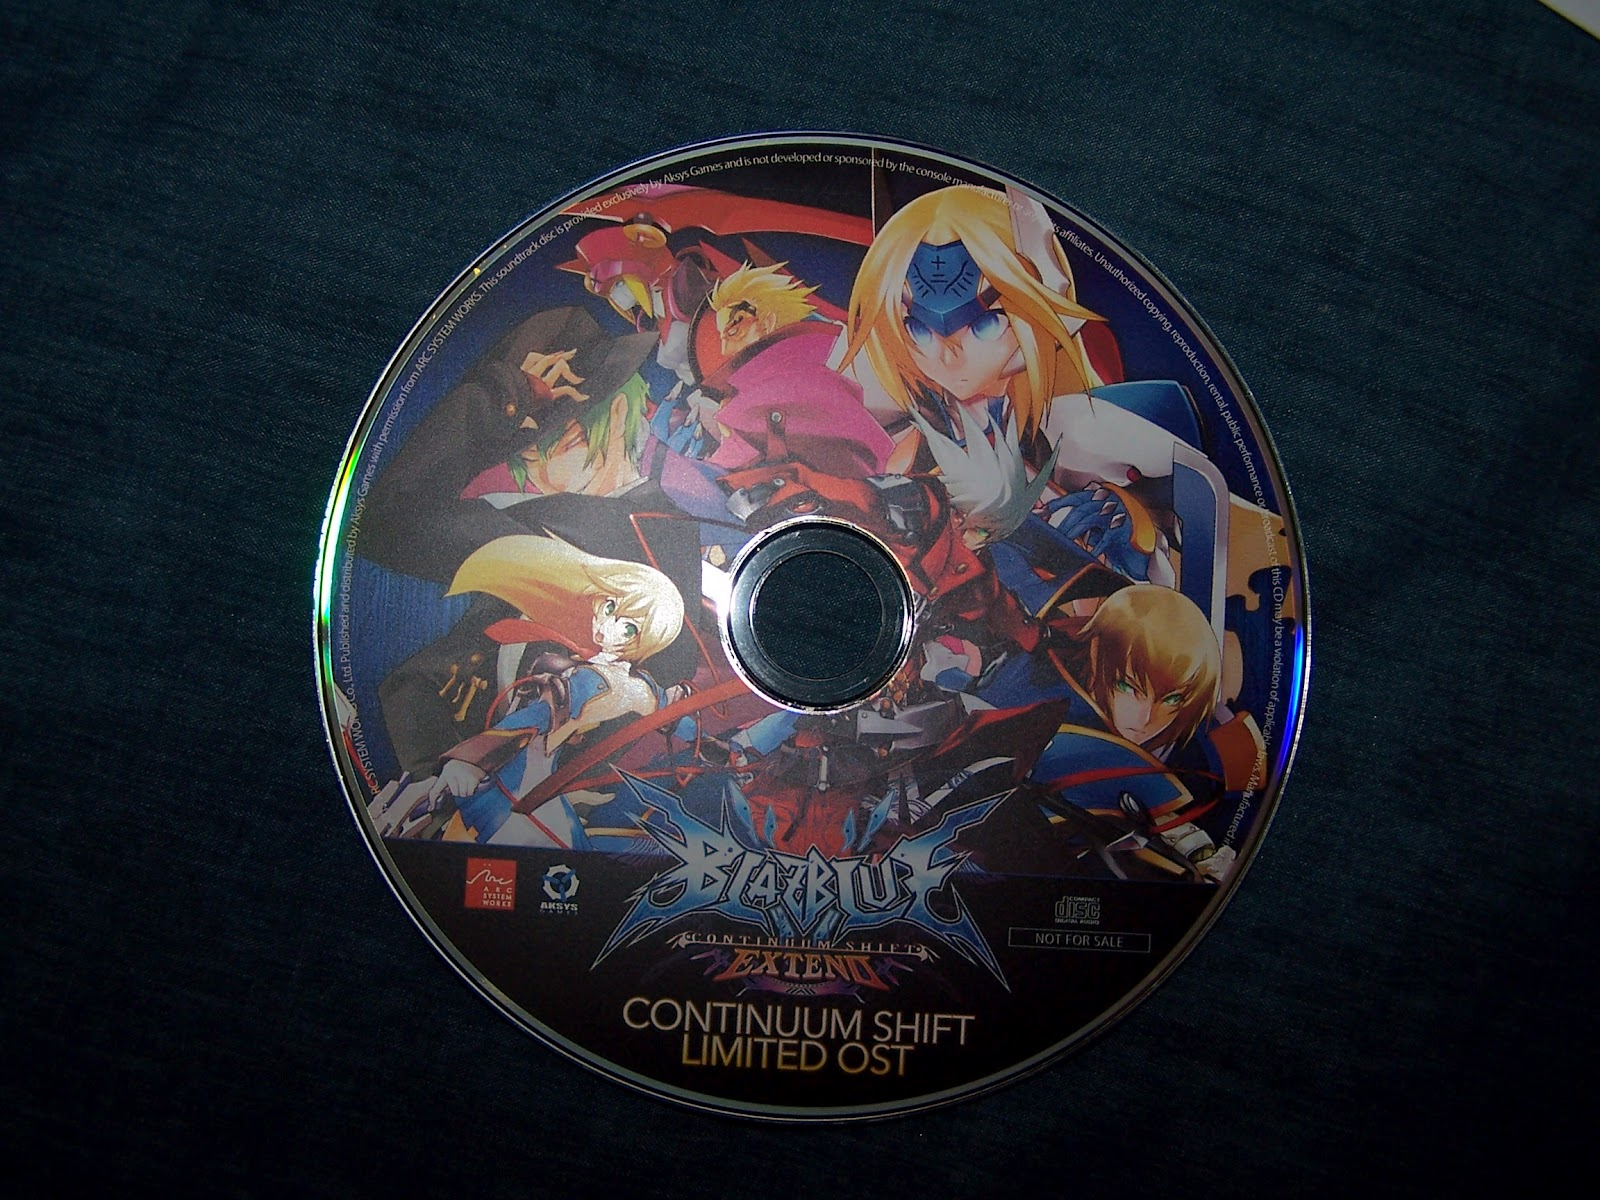 Short Wave Radio: BlazBlue Continuum Shift Extend Limited